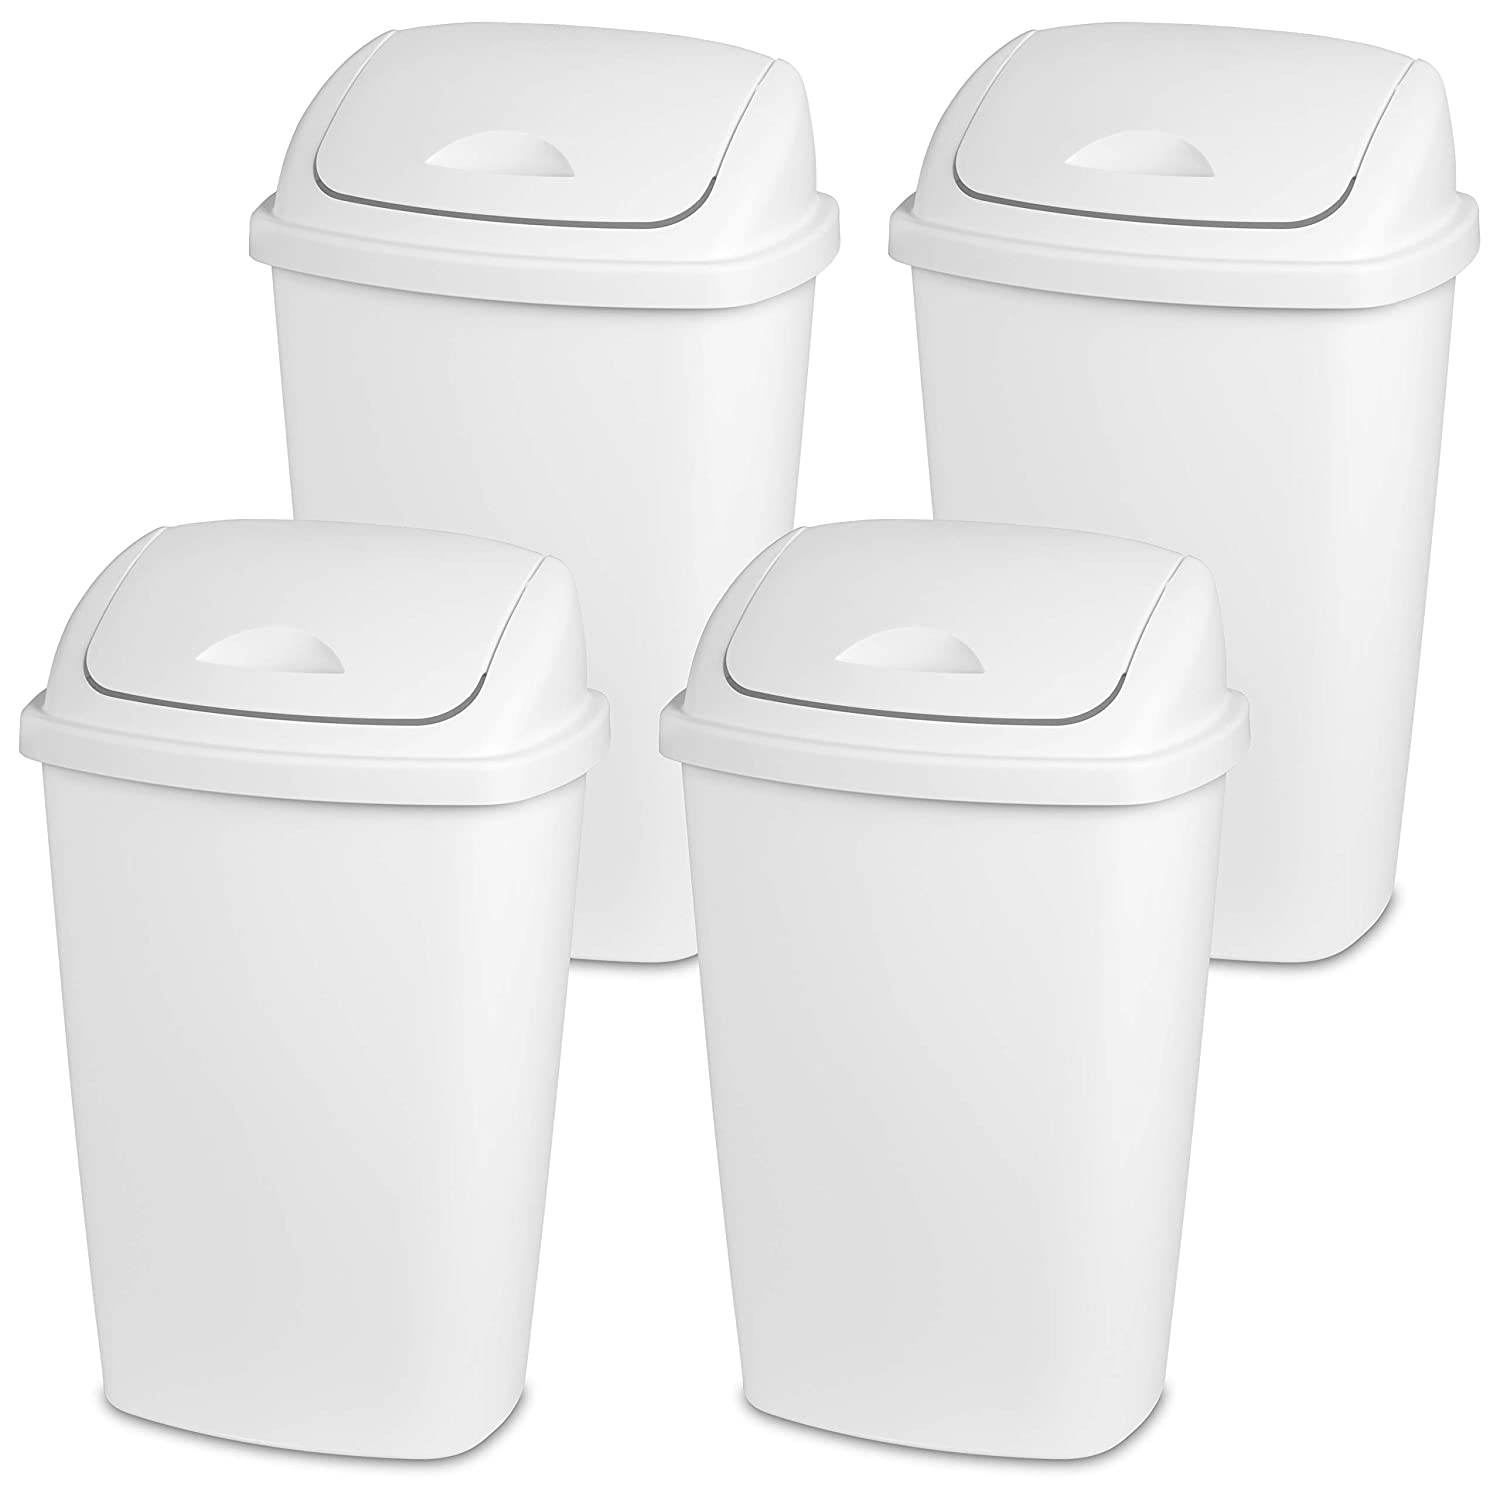 Sterilite 10888004 13.2 Gallon/50 Liter SwingTop Wastebasket, White, 4-Pack